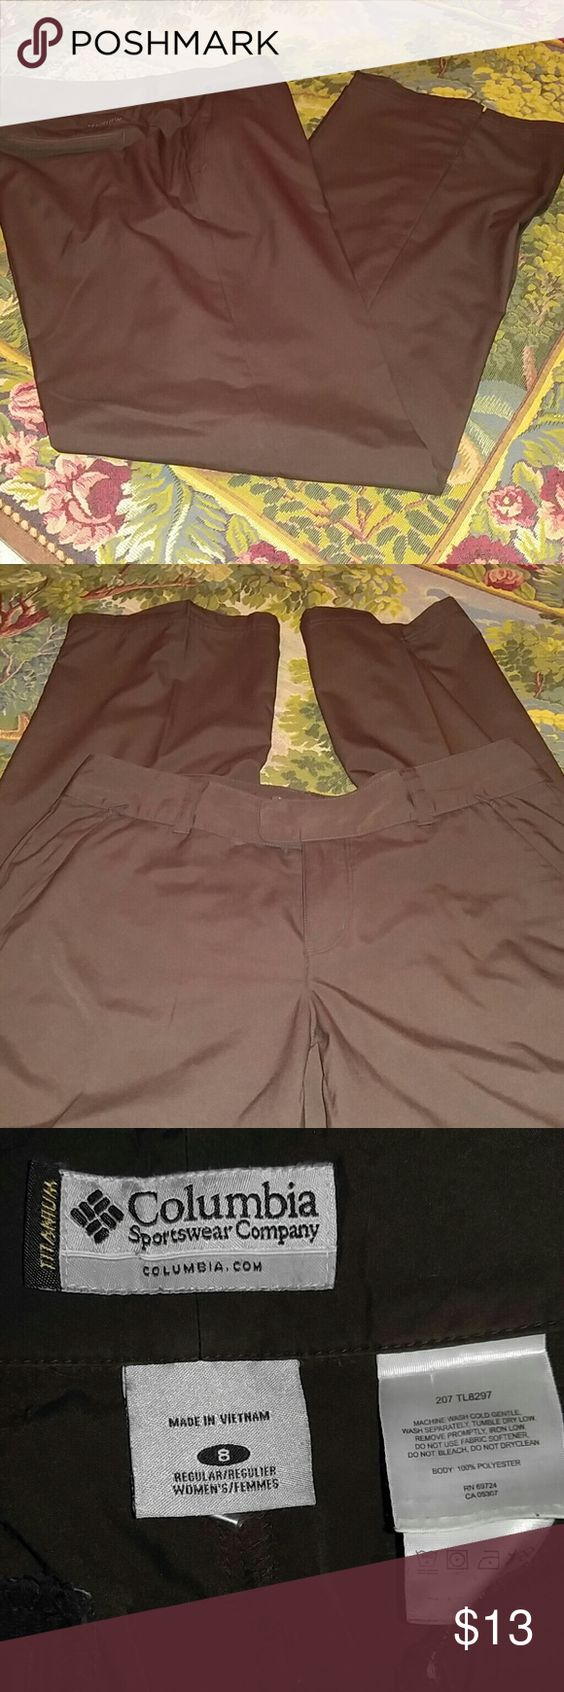 COLUMBIA SPORTSWEAR CO. Brown pants Excellent condition. Zipper pockets in front, pockets in back. Great for Fall/Winter wardrobe transition. Light weight material. Columbia Sportswear Pants Trousers